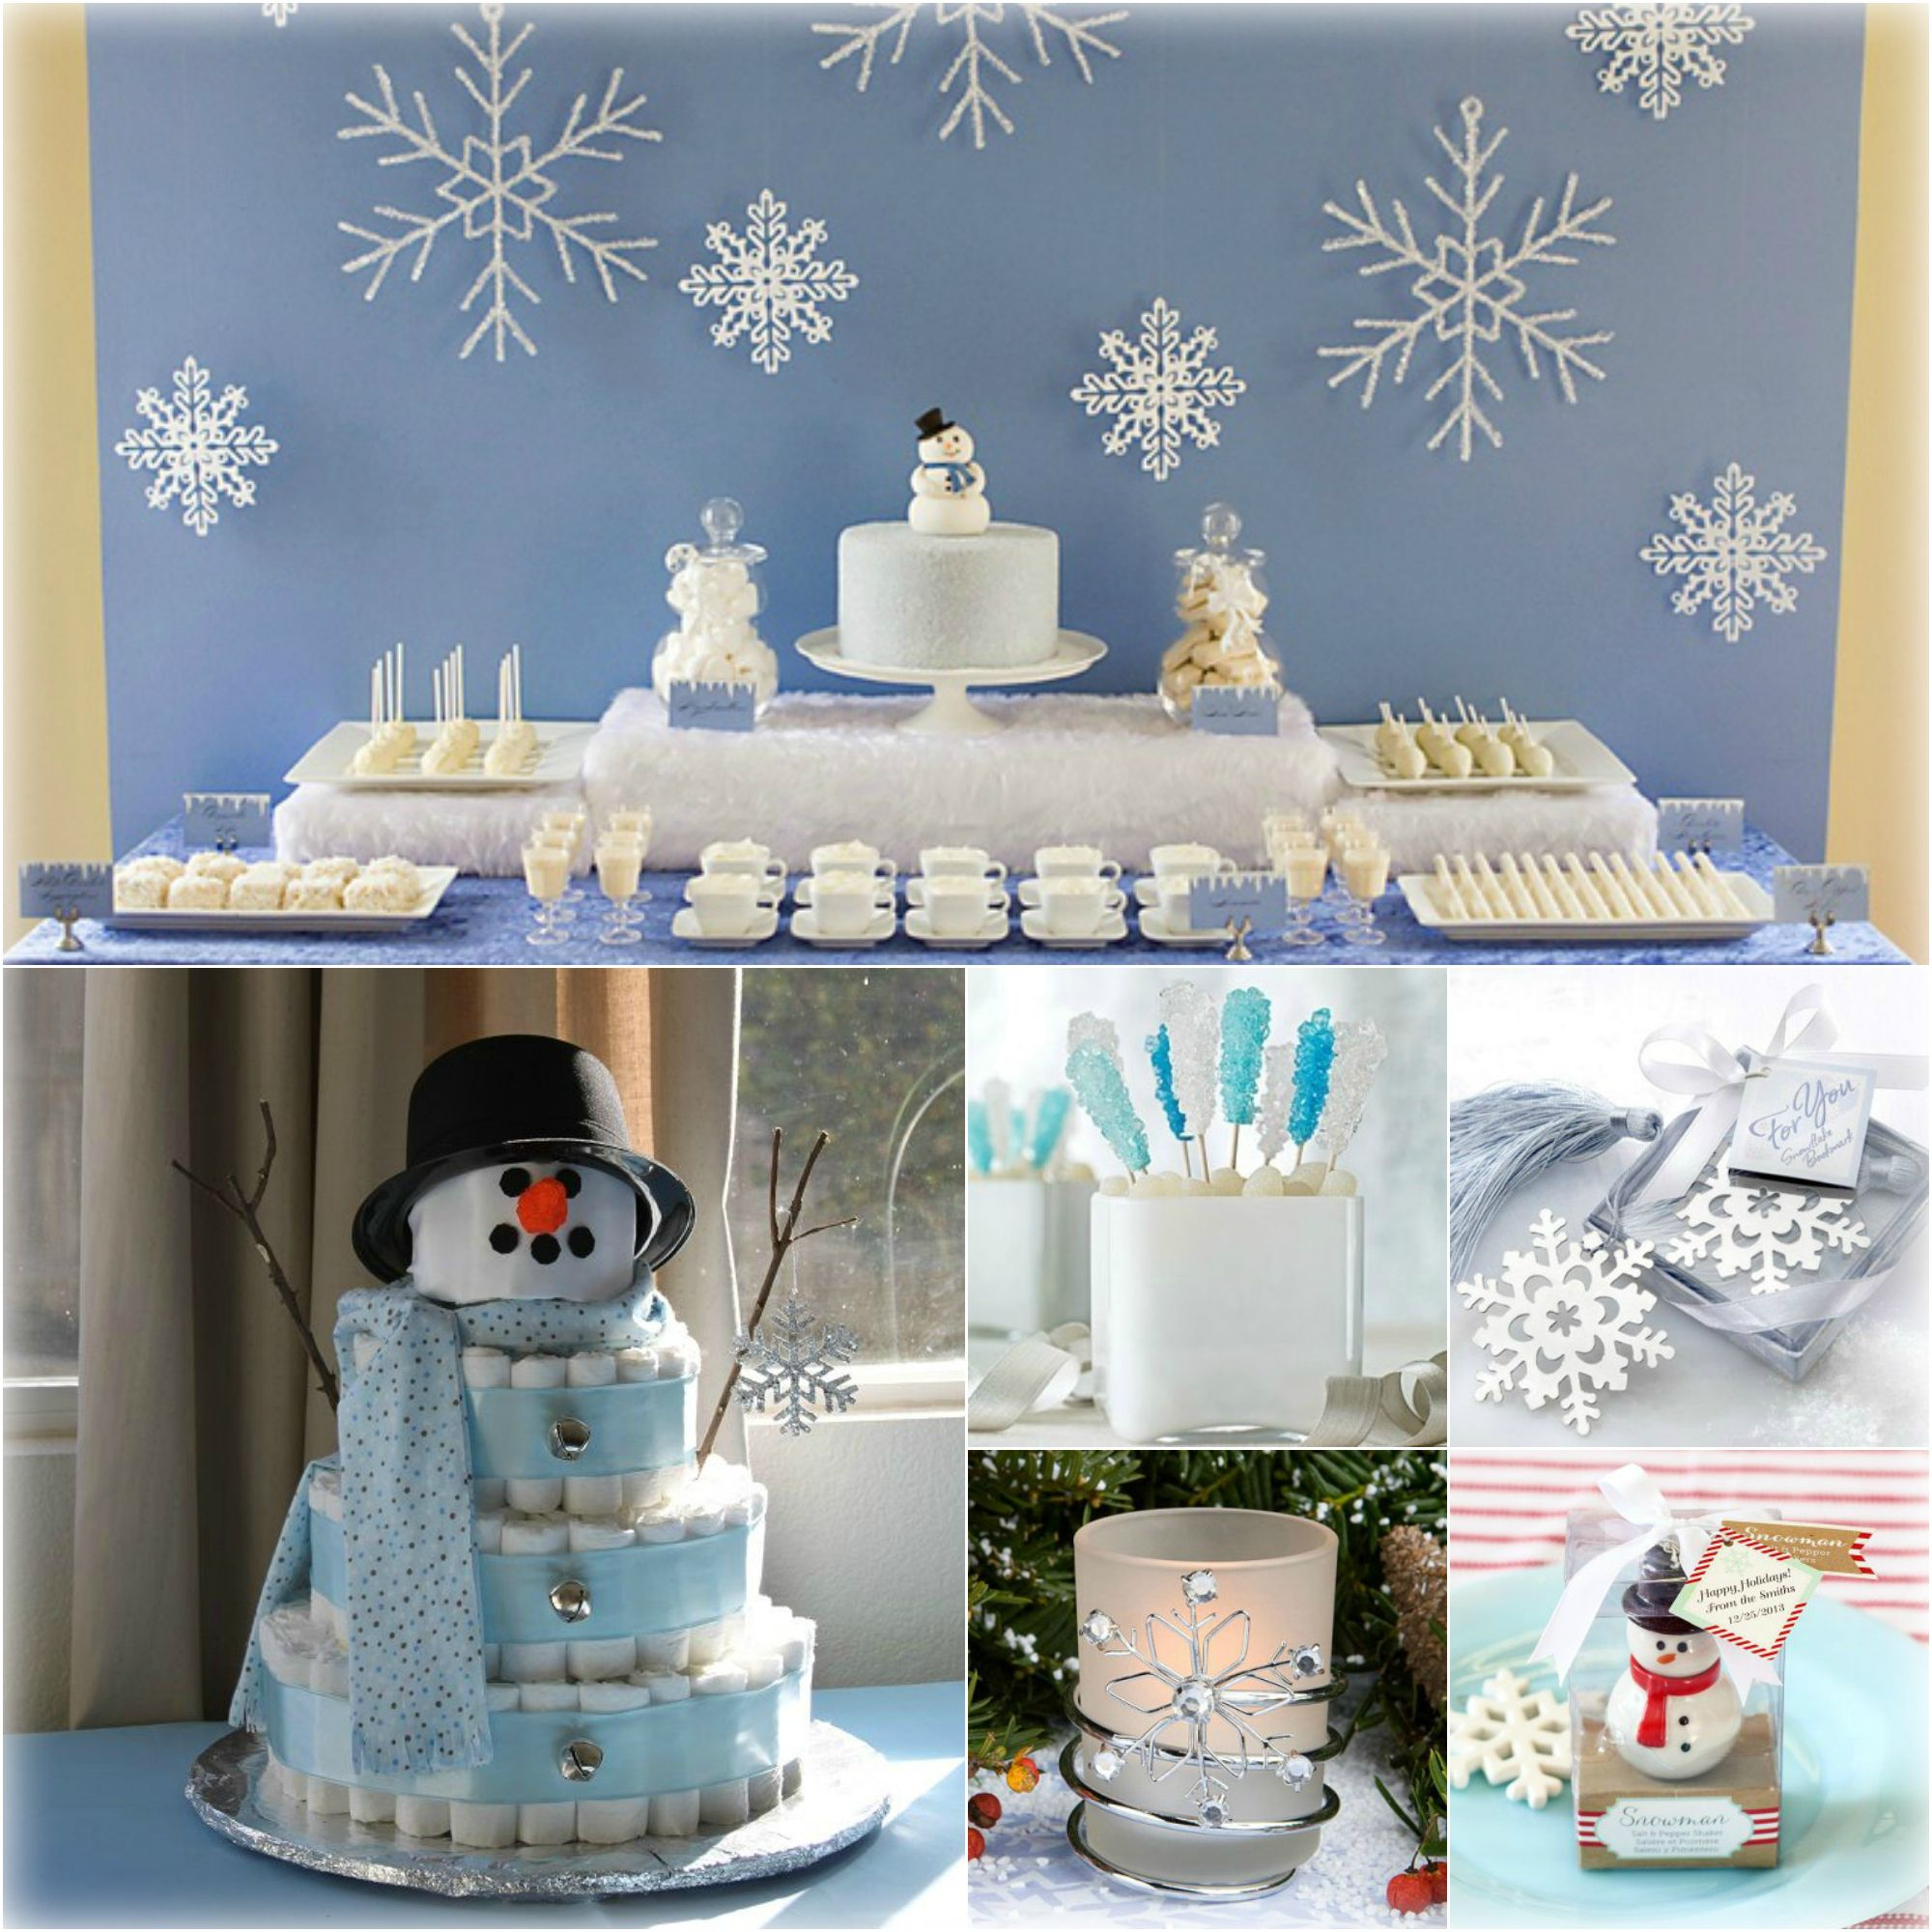 Winter Wonderland Baby Shower Snowflake Baby Shower Winter Wonderland Baby Shower Baby Shower Winter